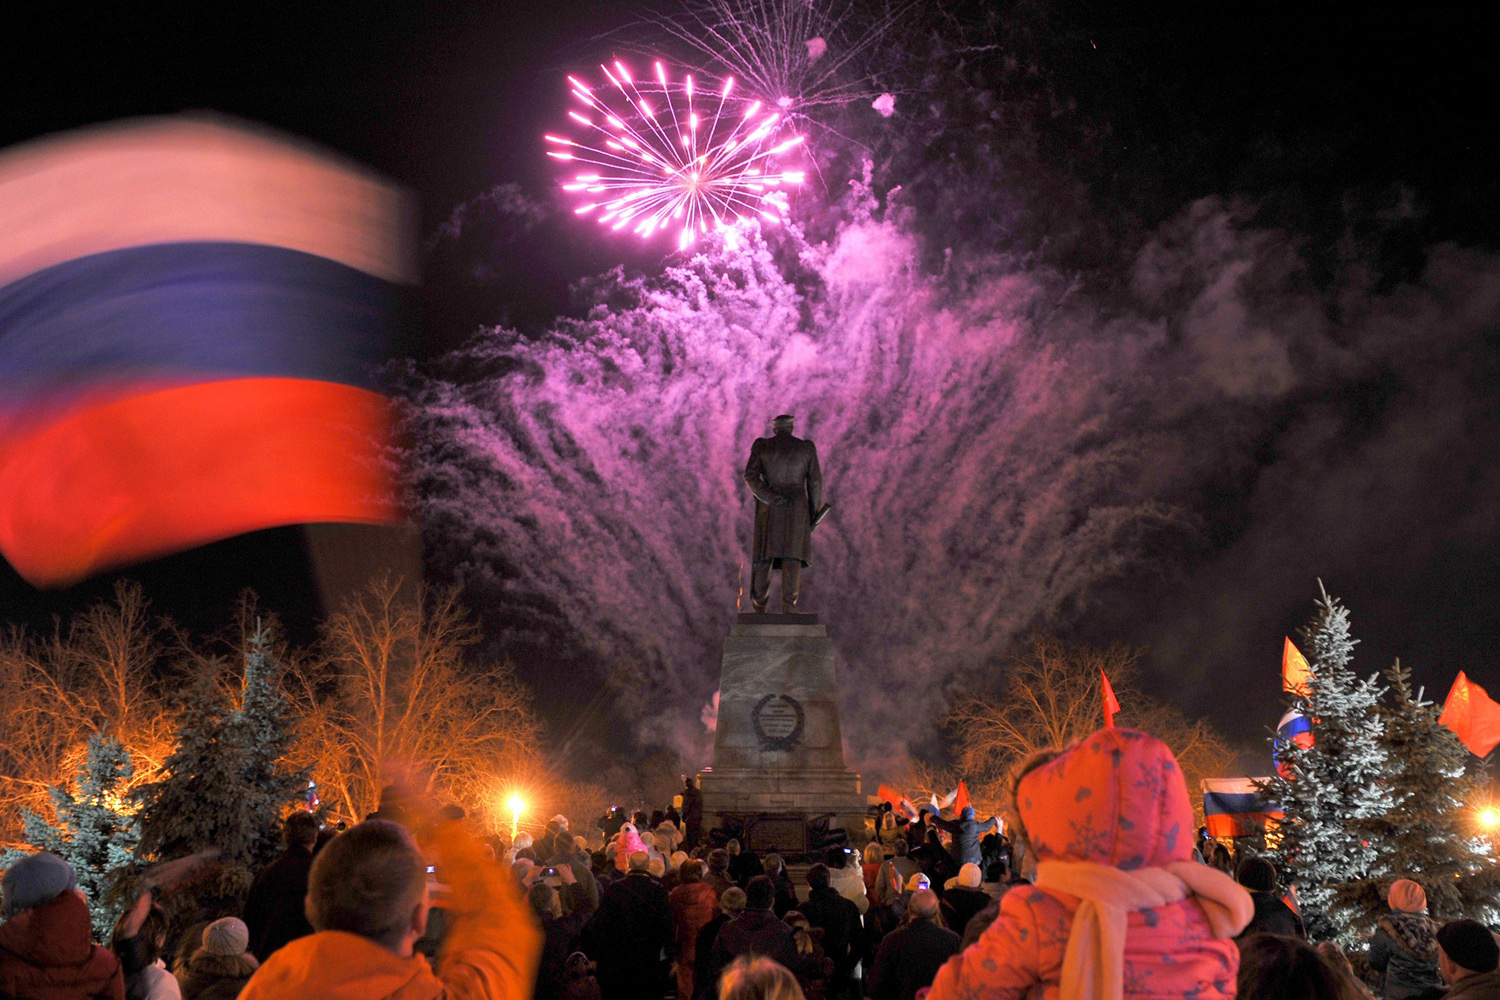 Mar. 21, 2014.  A man waves a Russian flag as people look at fire works in the center of the Crimean city of Sevastopol. Russia's upper house of parliament unanimously voted on March 21 to ratify the treaty incorporating Crimea into Russian territory.